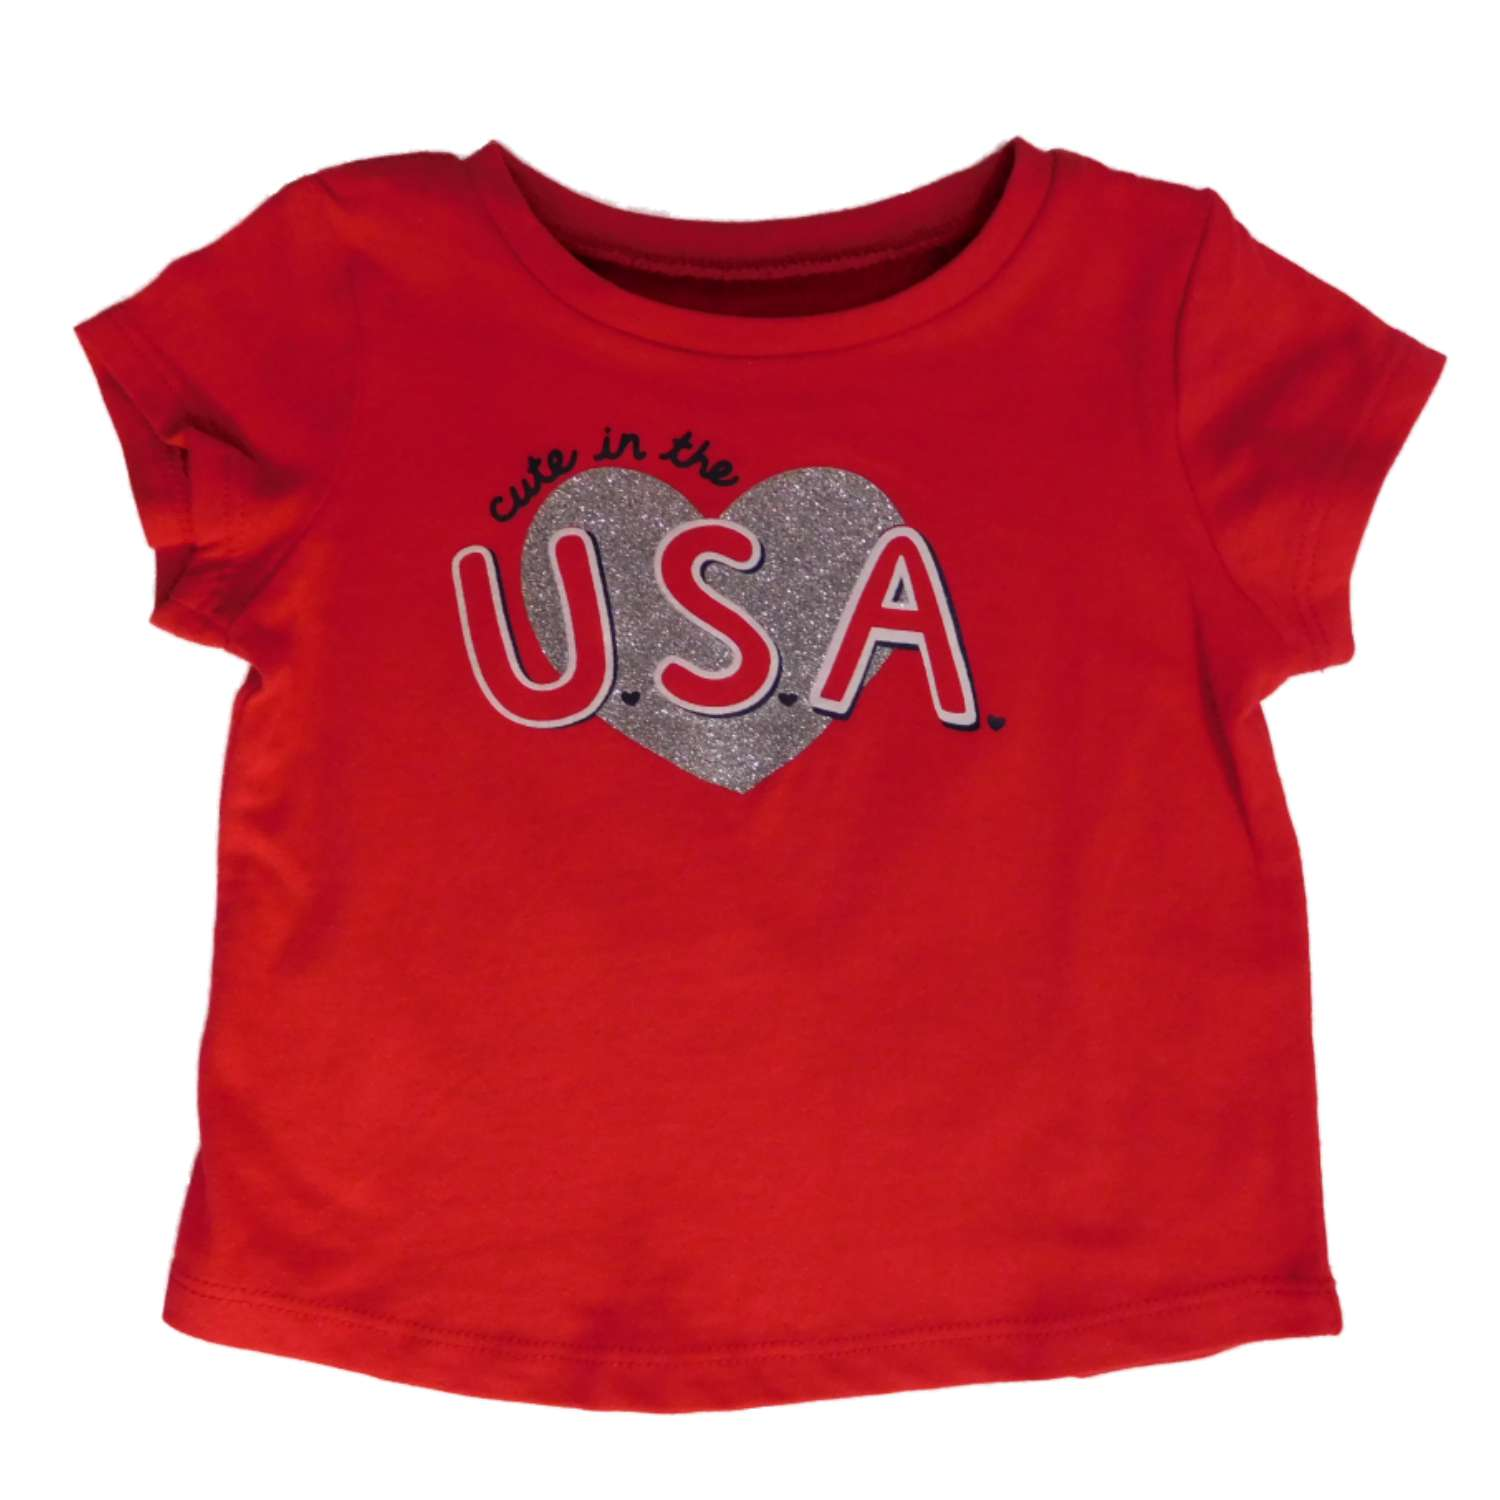 Jumping Beans Infant Girls Red Cute In USA Glitter Heart Patriotic Tee Shirt